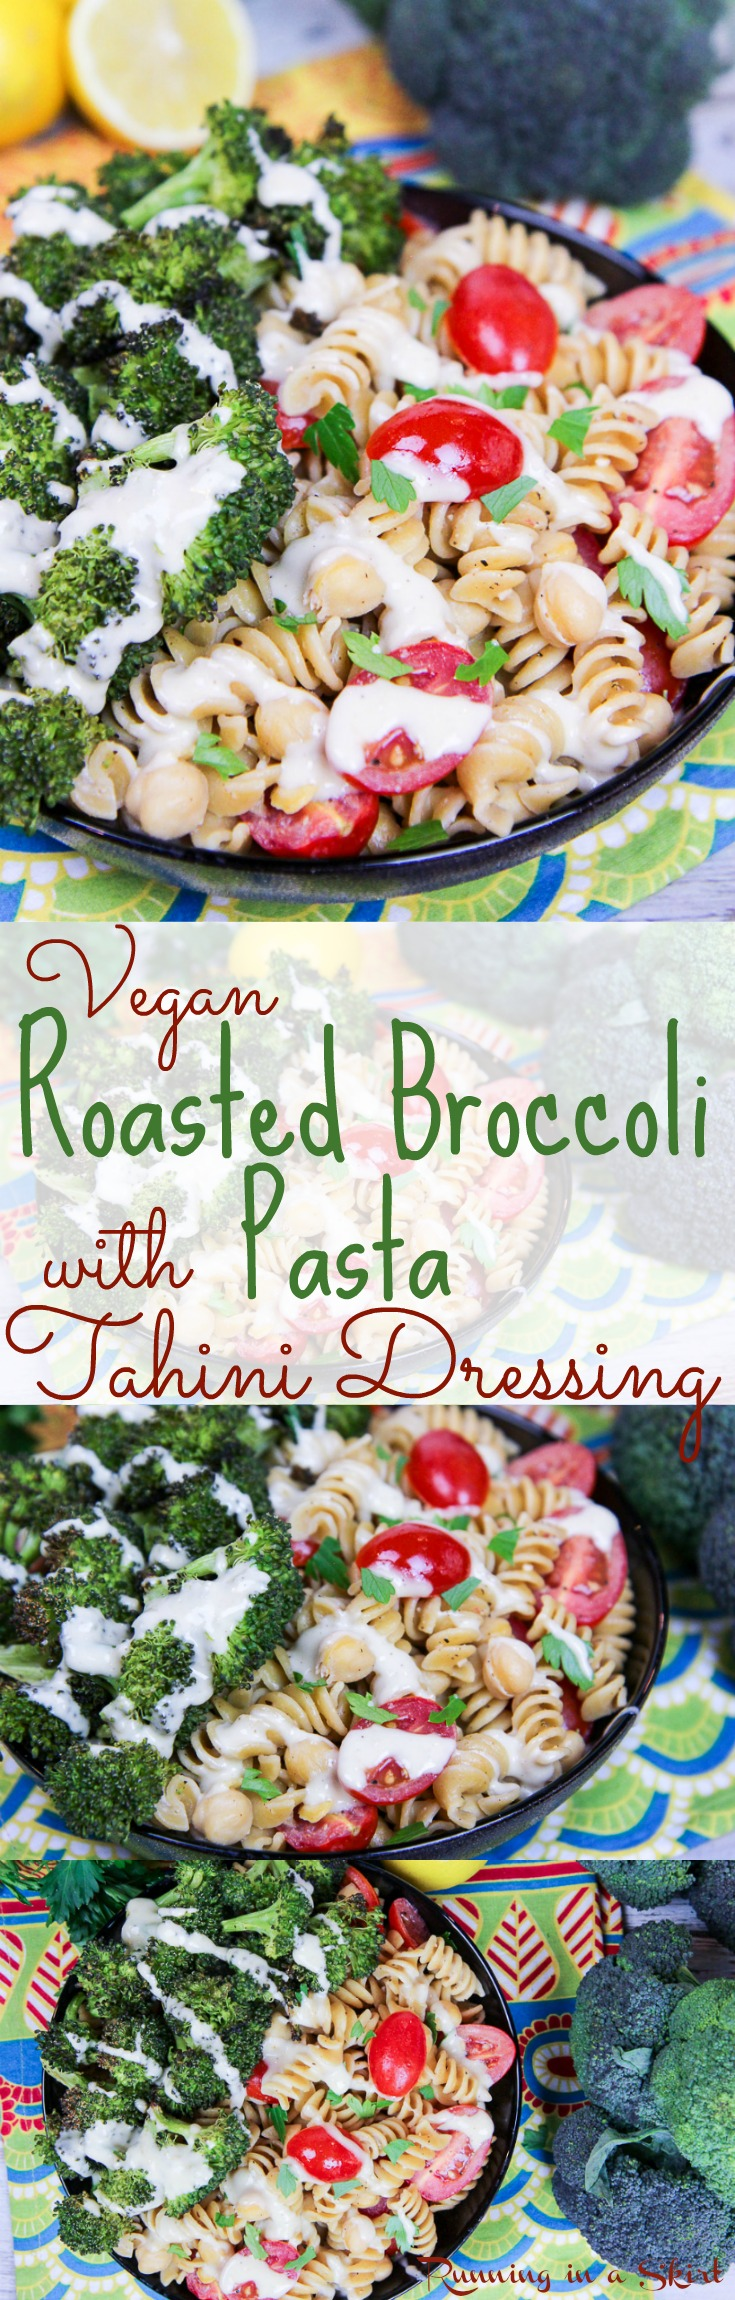 20 Minute Healthy Roasted Broccoli Pasta recipe with Tahini Dressing. An easy vegan / vegetarian meal for when you need comfort foods. Great for weeknight dinners and meals. Uses whole wheat pasta and chickpeas for added protein. Dairy free! / Running in a Skirt via @juliewunder